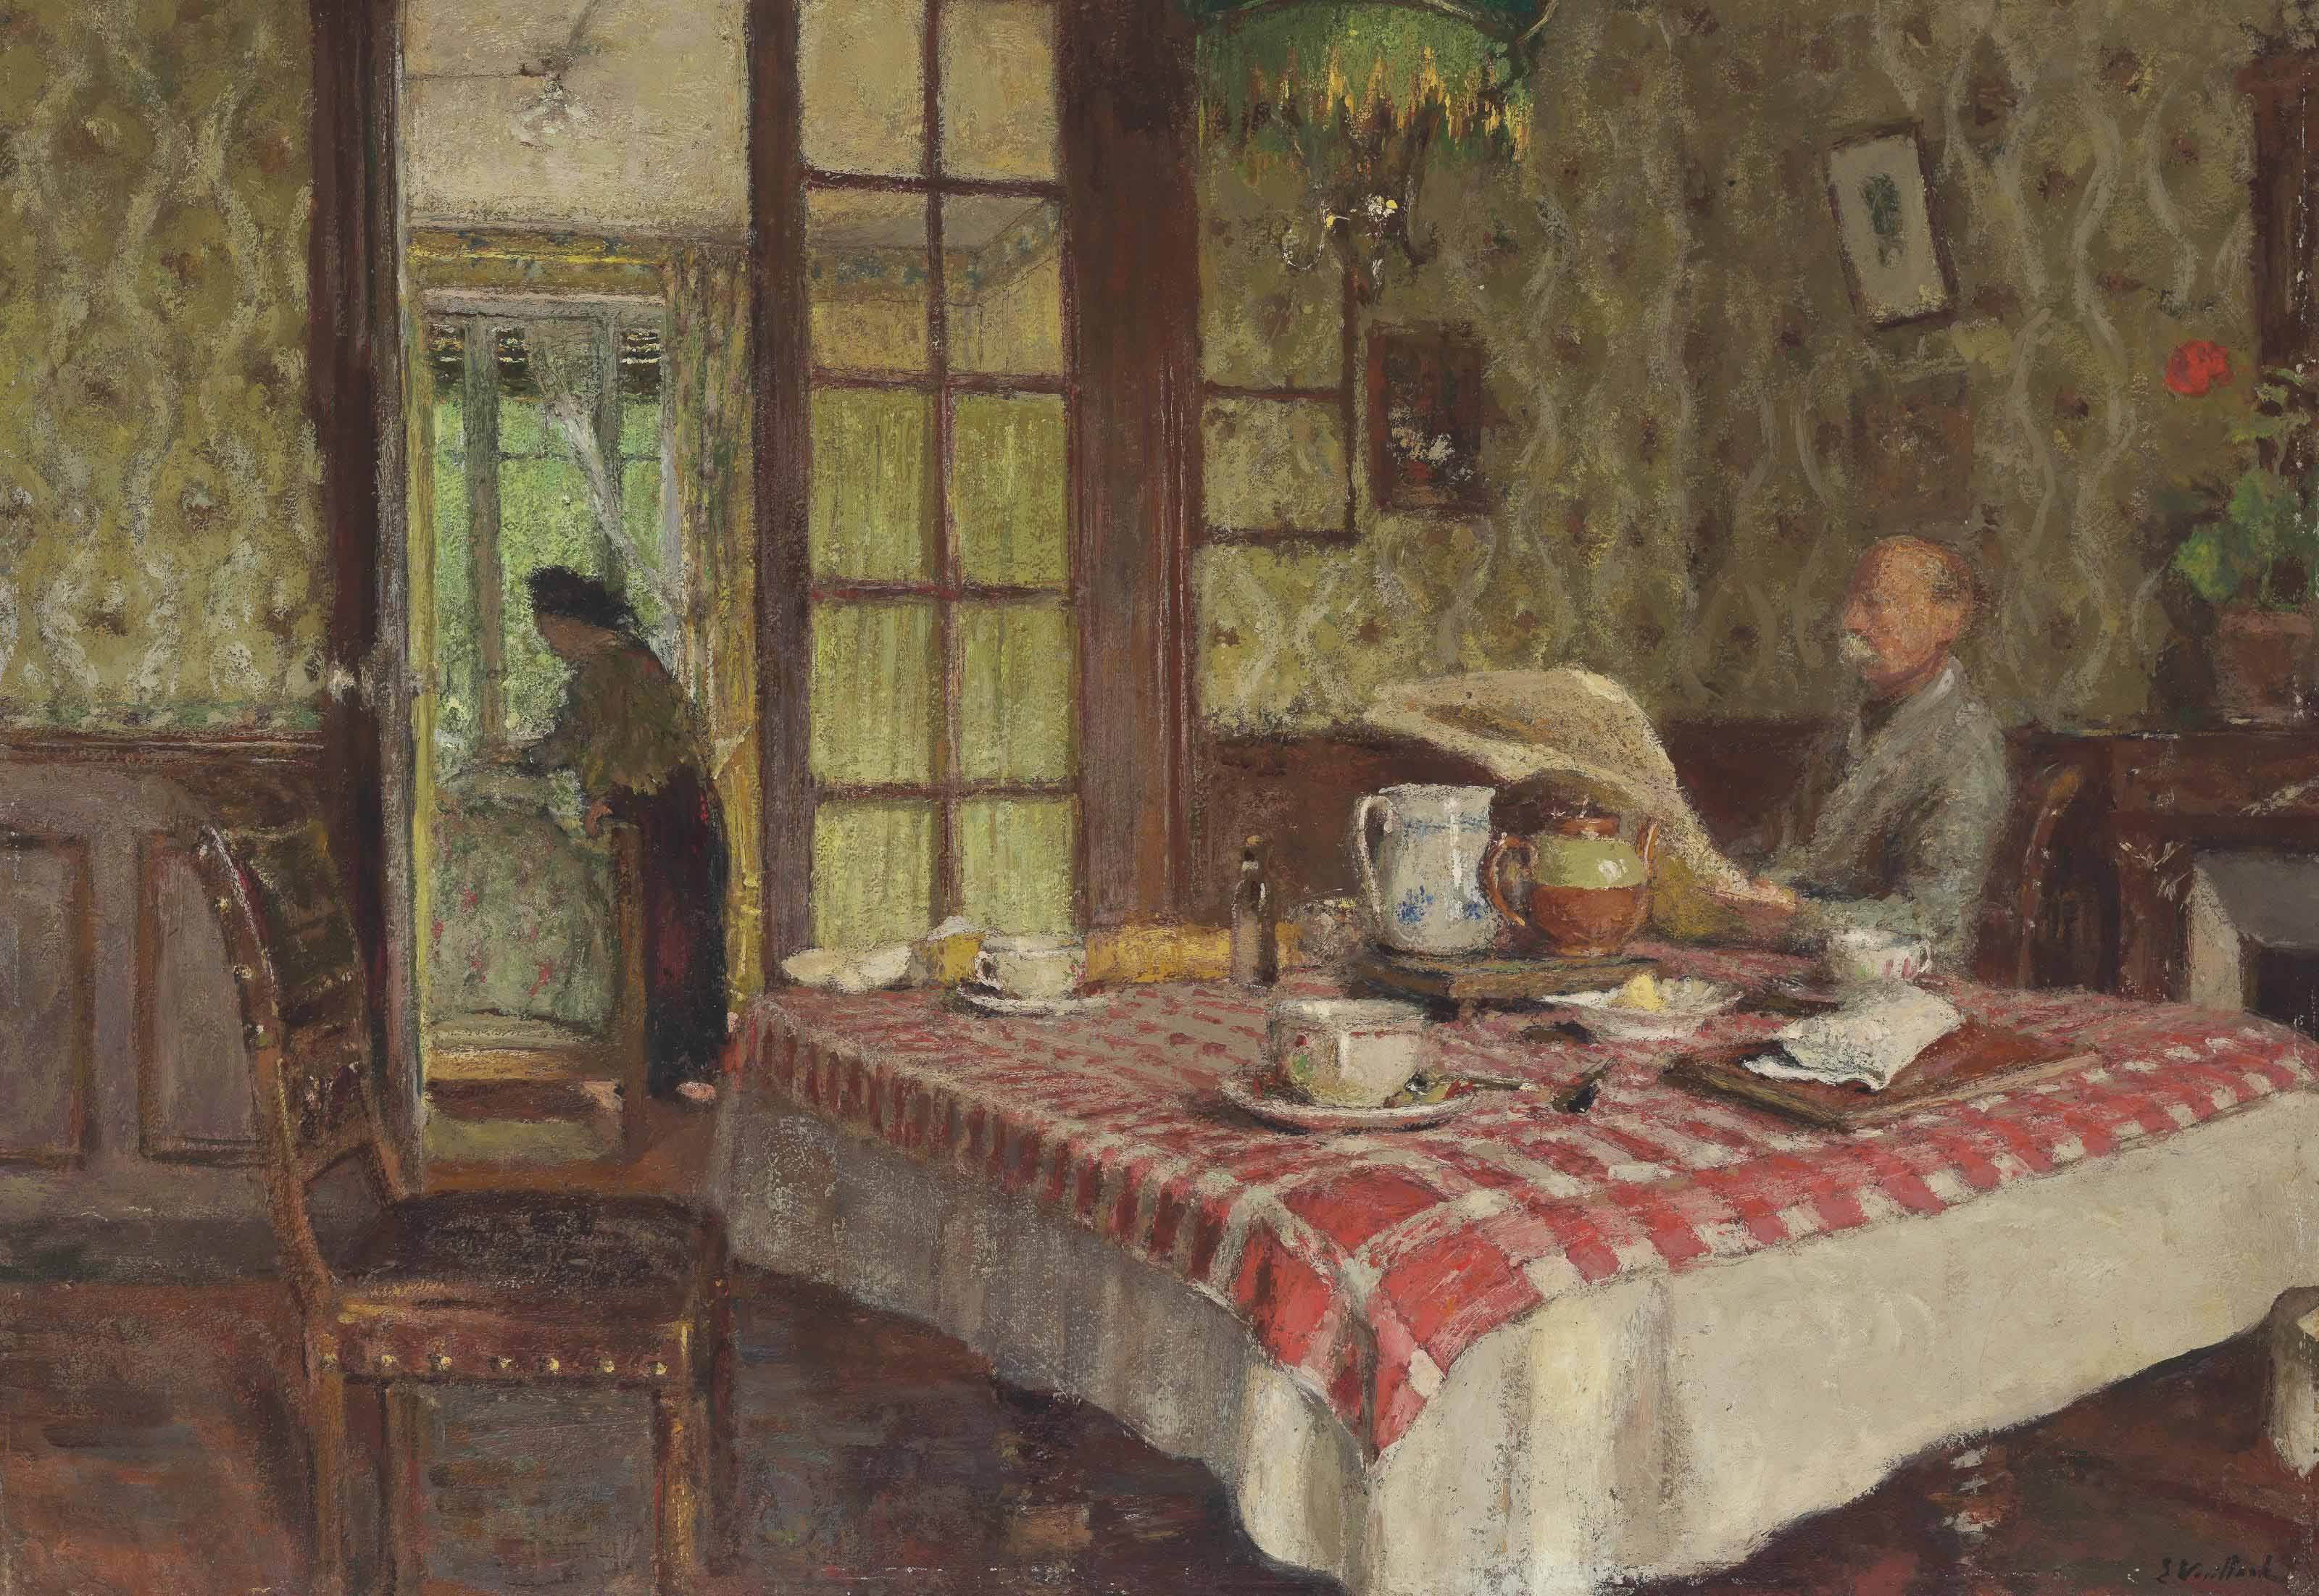 edouard vuillard 1868 1940 la lecture dans la salle manger vaucresson christie 39 s. Black Bedroom Furniture Sets. Home Design Ideas